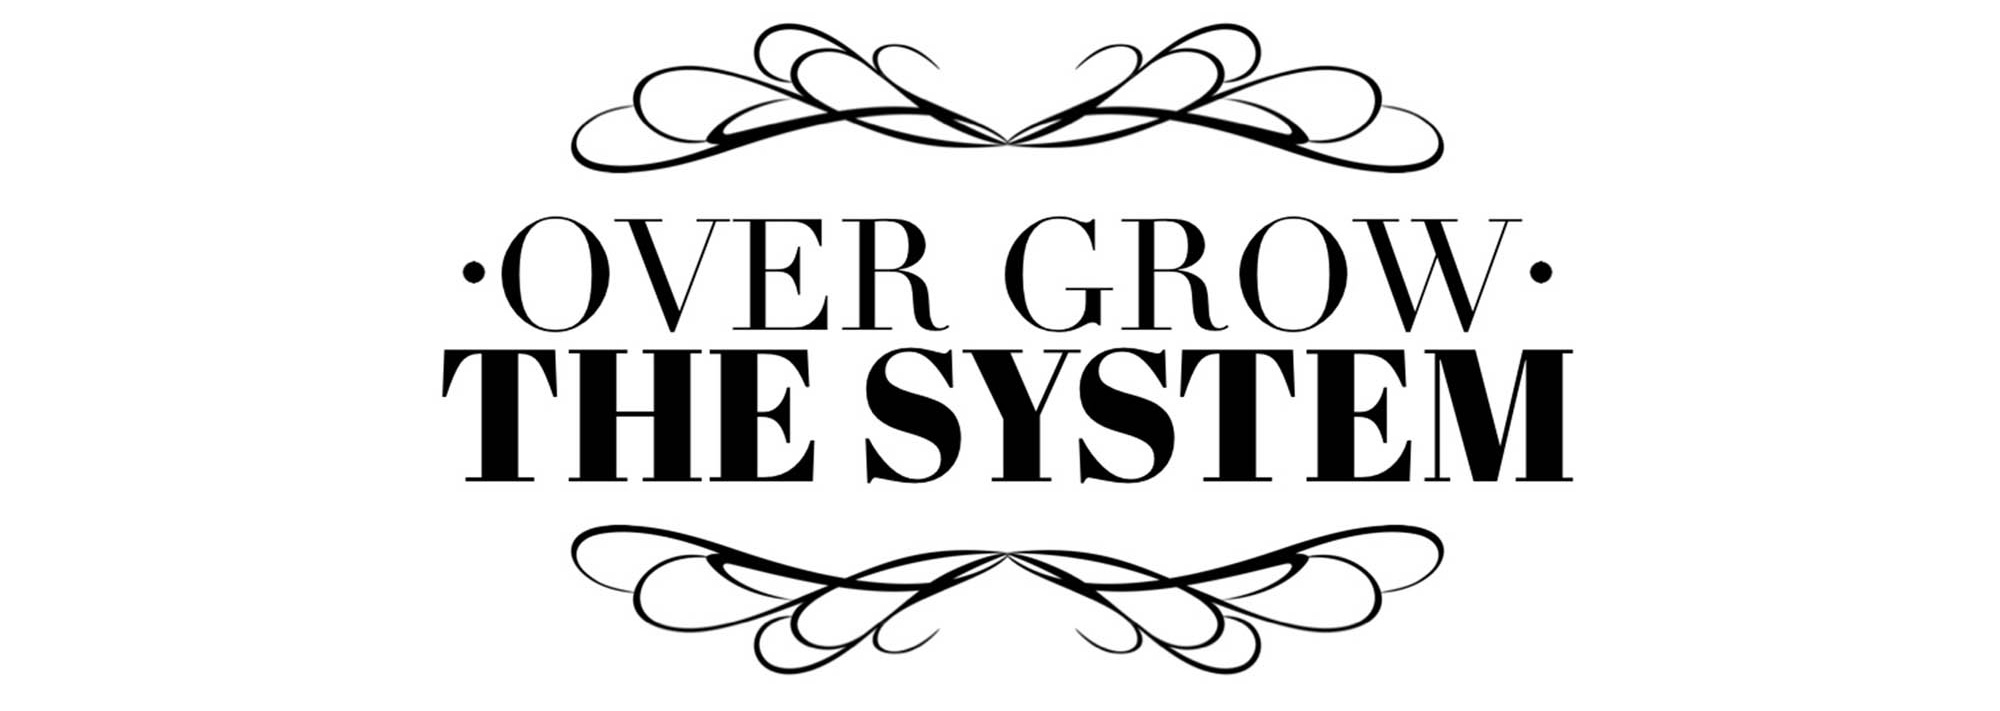 over grow the system